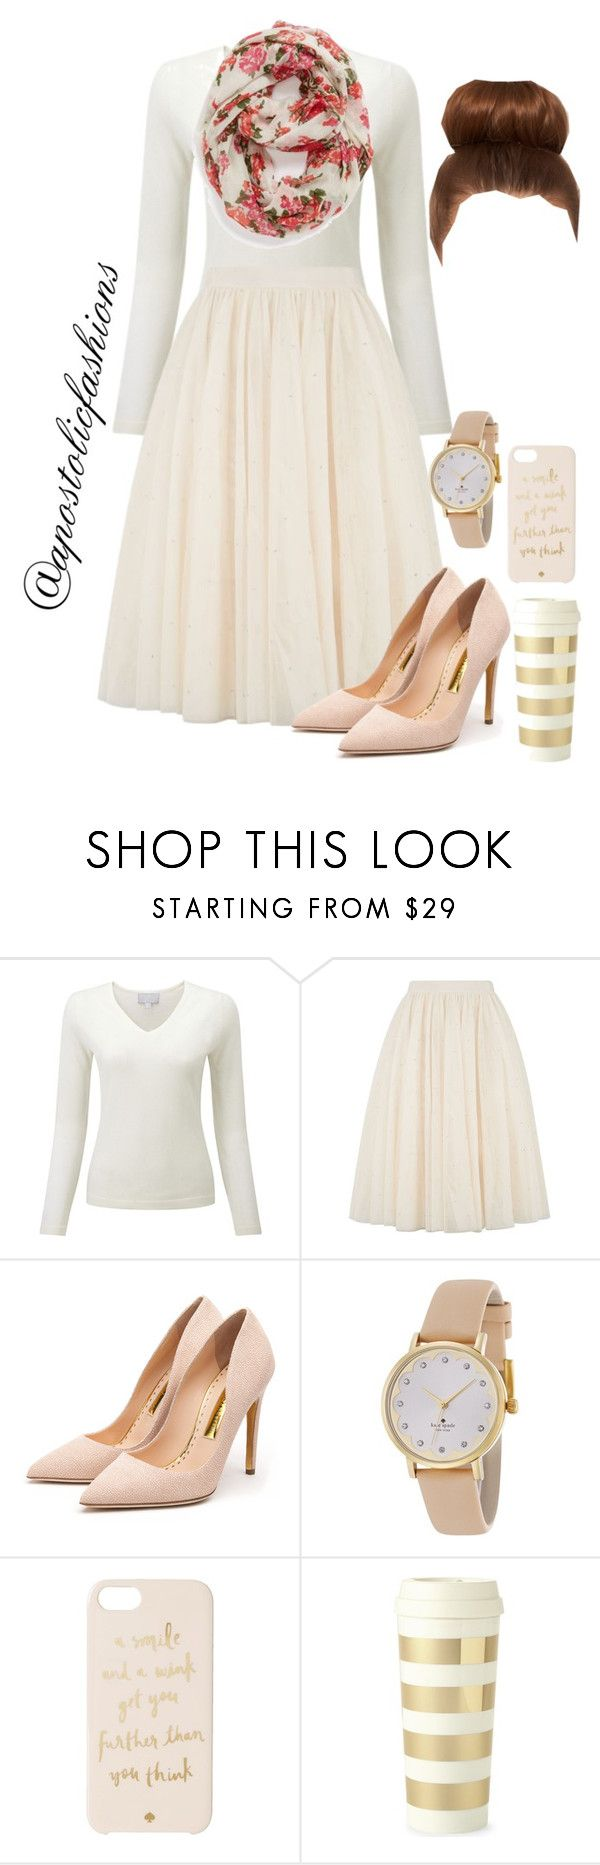 """Apostolic Fashions #1107"" by apostolicfashions ❤ liked on Polyvore featuring Ted Baker, Rupert Sanderson, Kate Spade and Capelli New York"